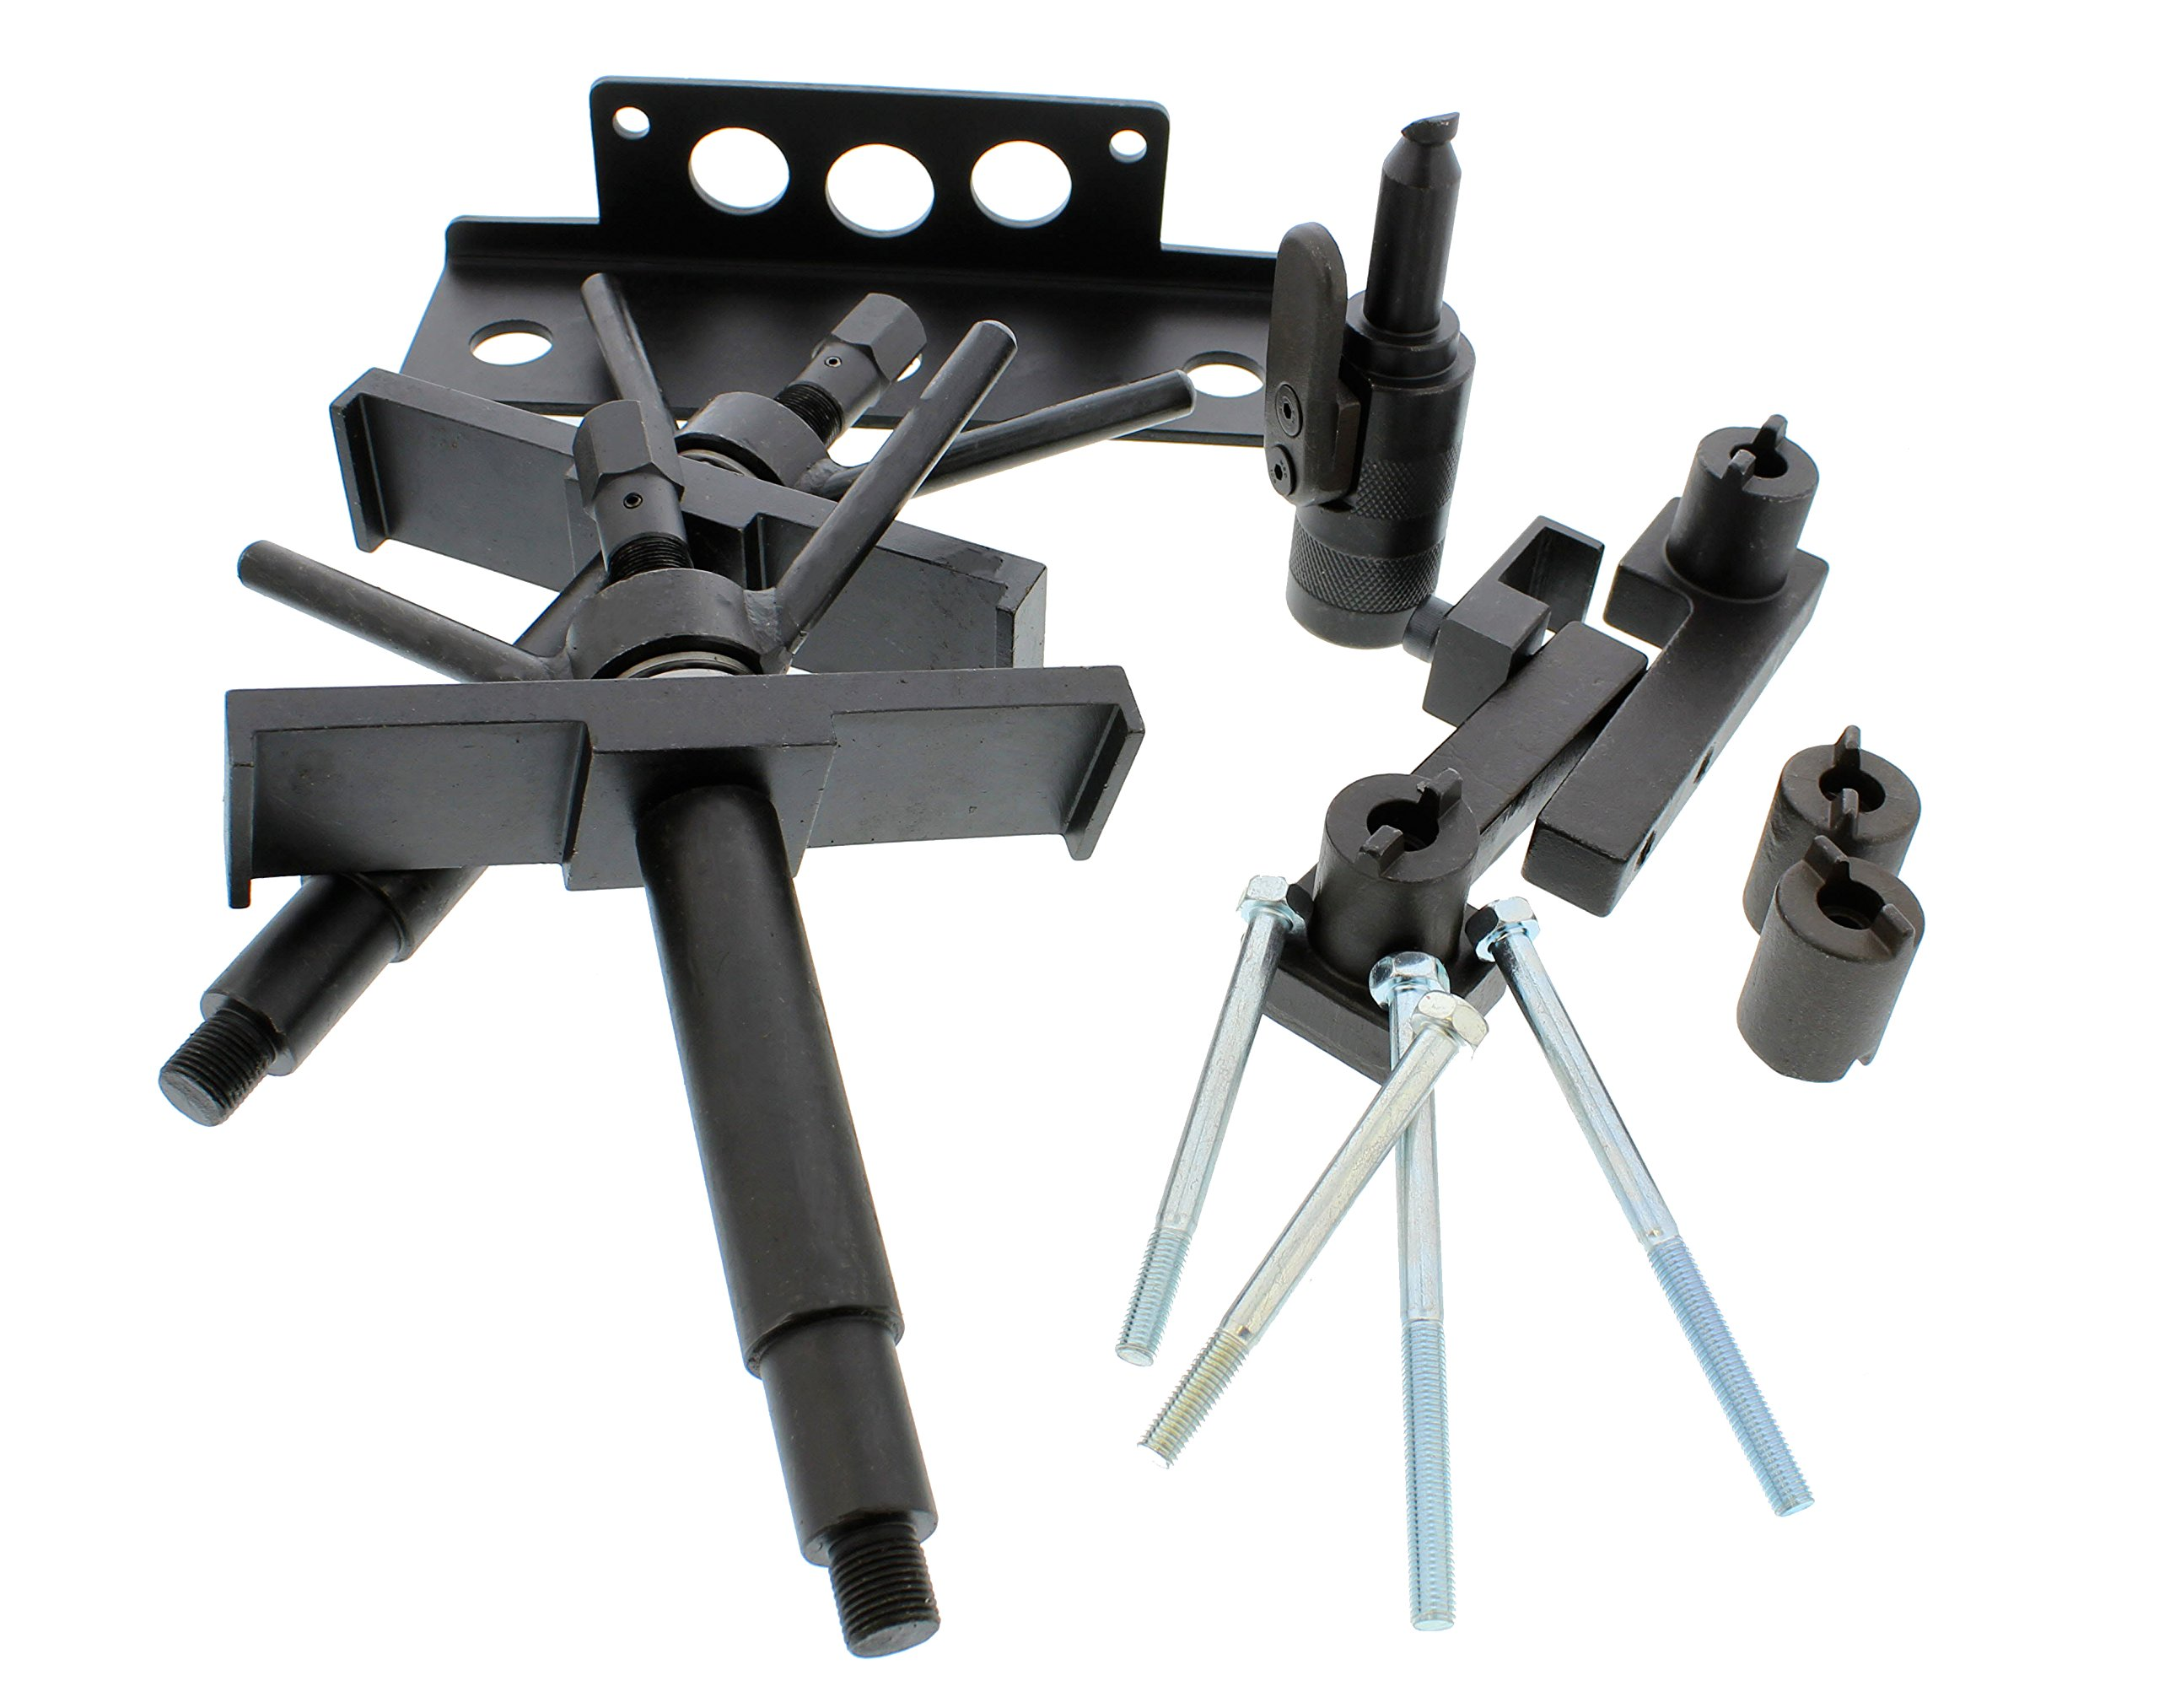 ABN Volvo Camshaft Crankshaft Engine Alignment Tool Timing Set Kit for Volvo 850, 960, S40, S70, S90 by ABN (Image #2)